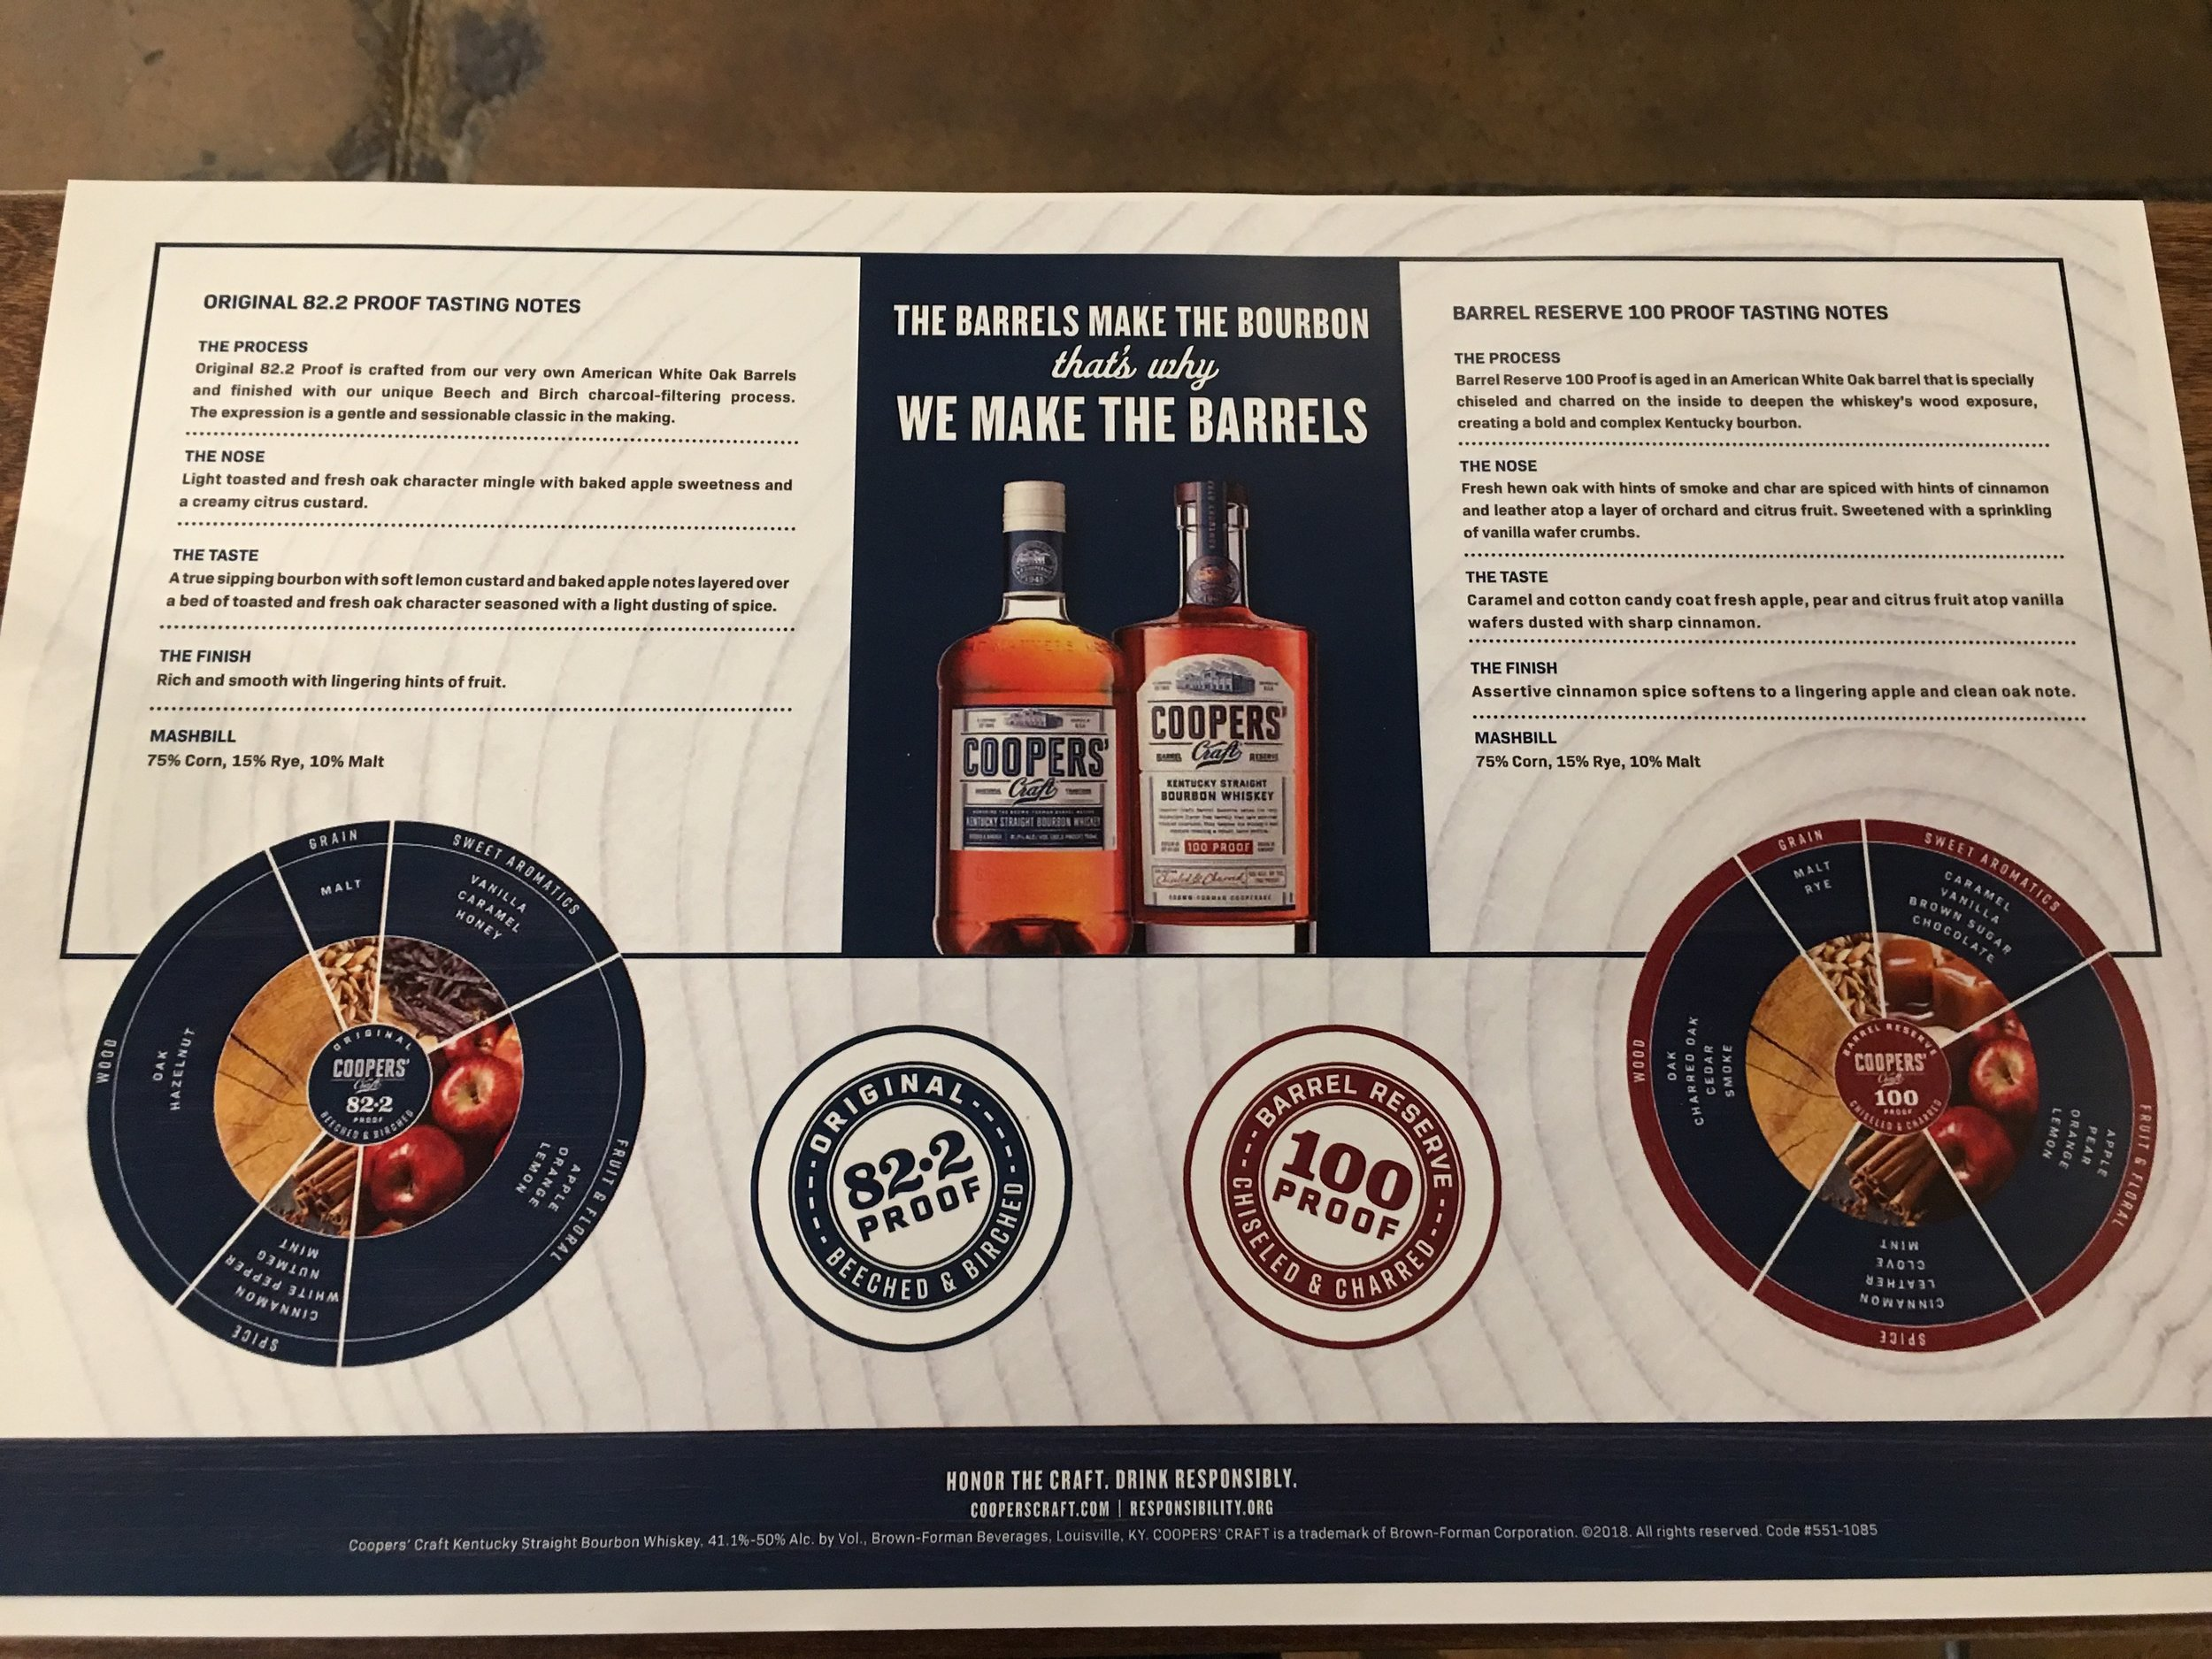 Tasting notes for Coopers' Craft Bourbon